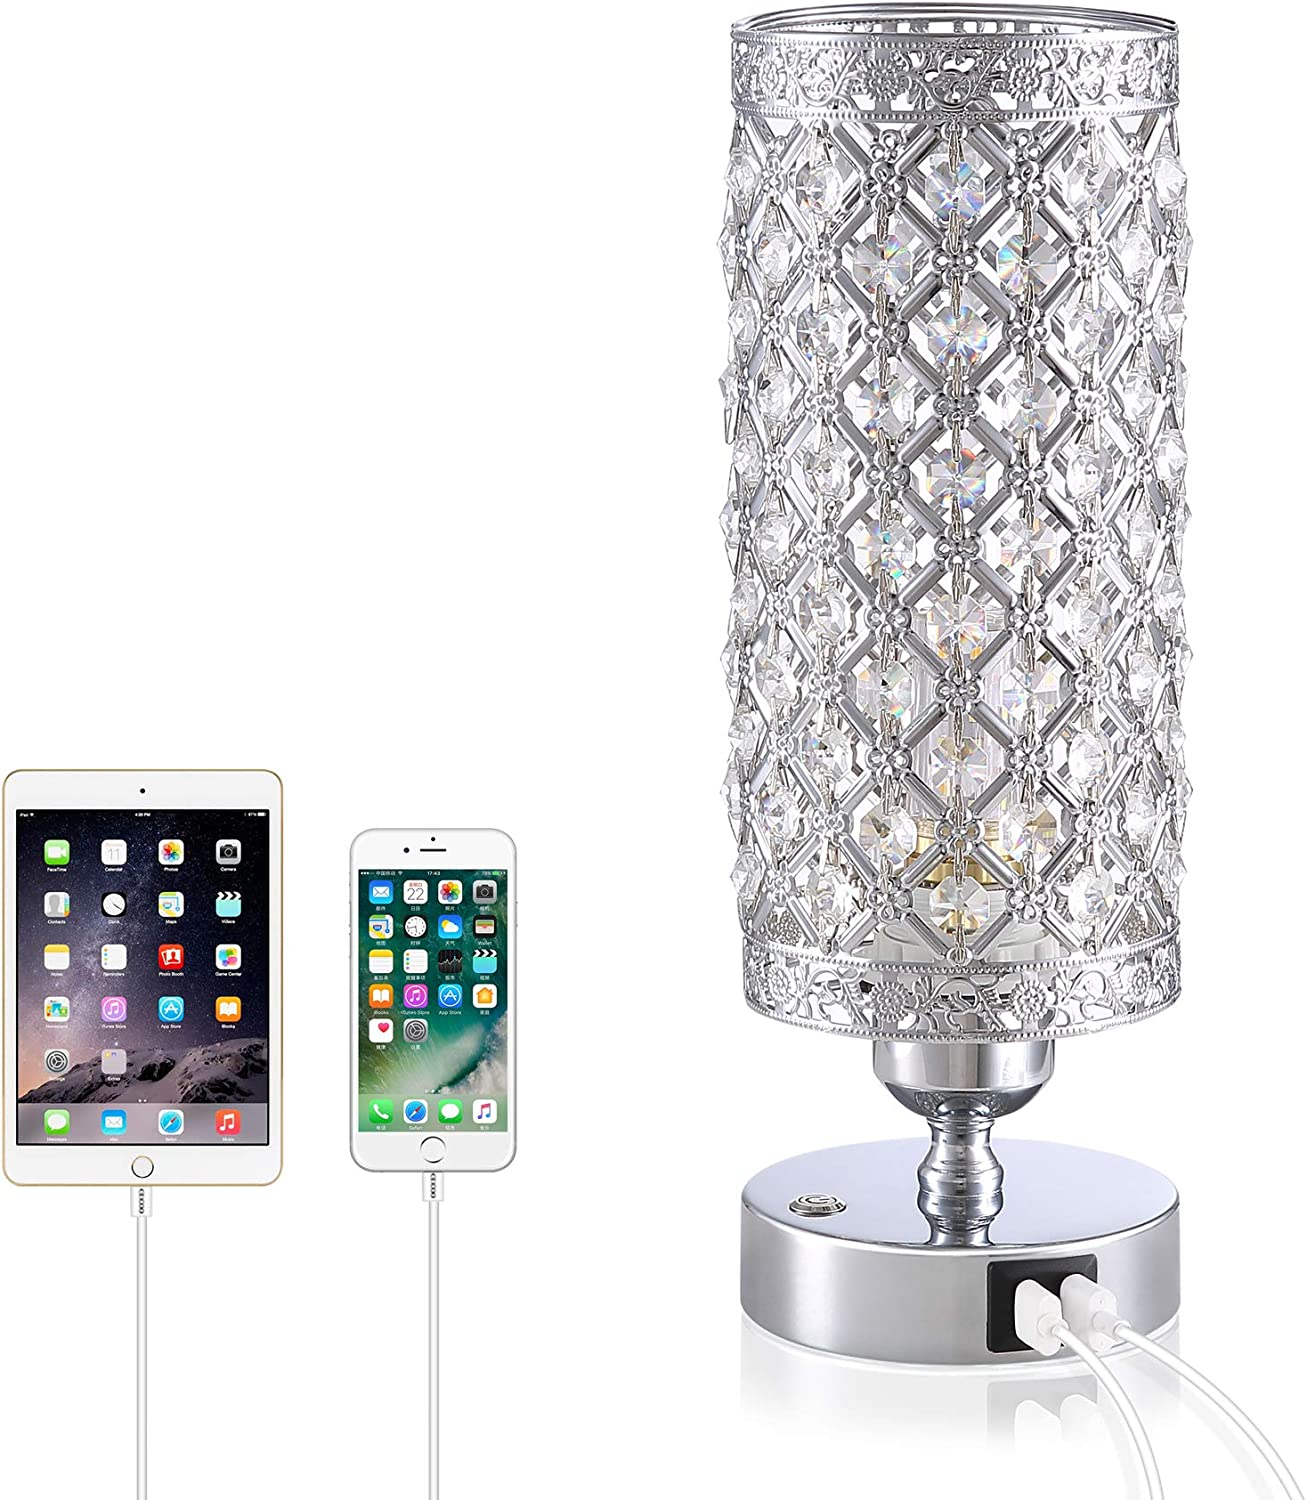 Crystal Bedside Table Lamp - Yarra Decor 3-Way Color Changing Lamps for Bedroom Modern USB Nightstand Lamp with Sliver Crystal Shade Decorative Lamps for Living Room, Kids Room(LED Bulb Included)